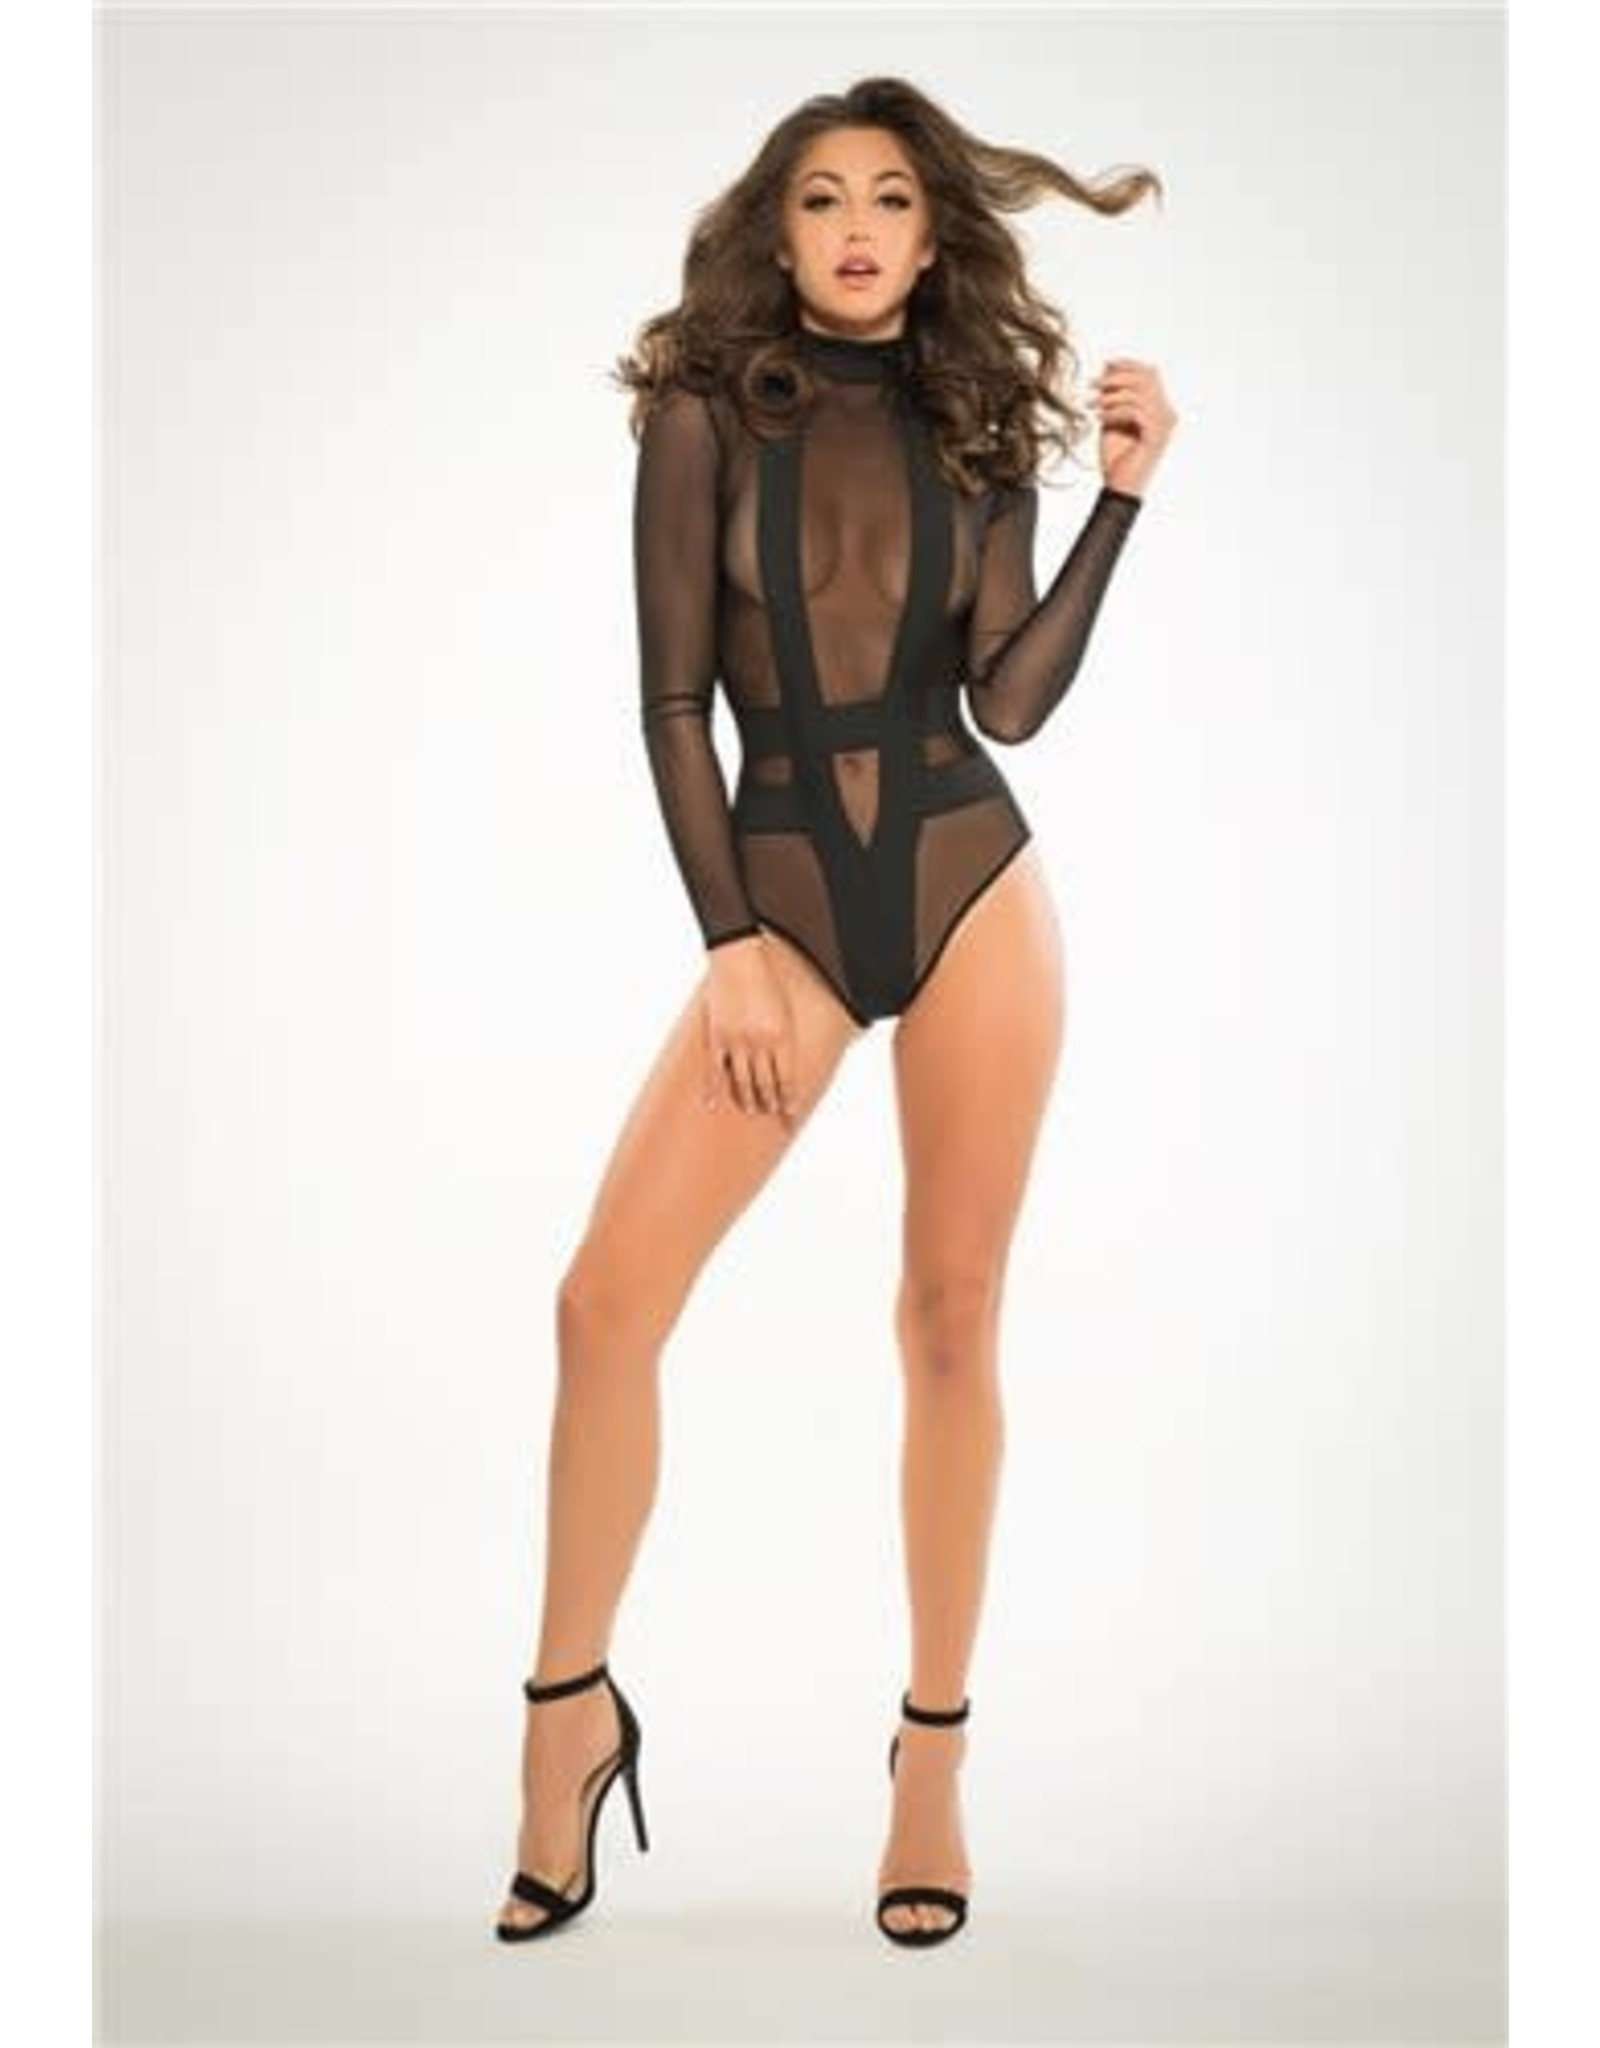 ALLURE LINGERIE ALLURE - ADORE - SKYE SHEER AND CHEEKY BODYSUIT - LARGE